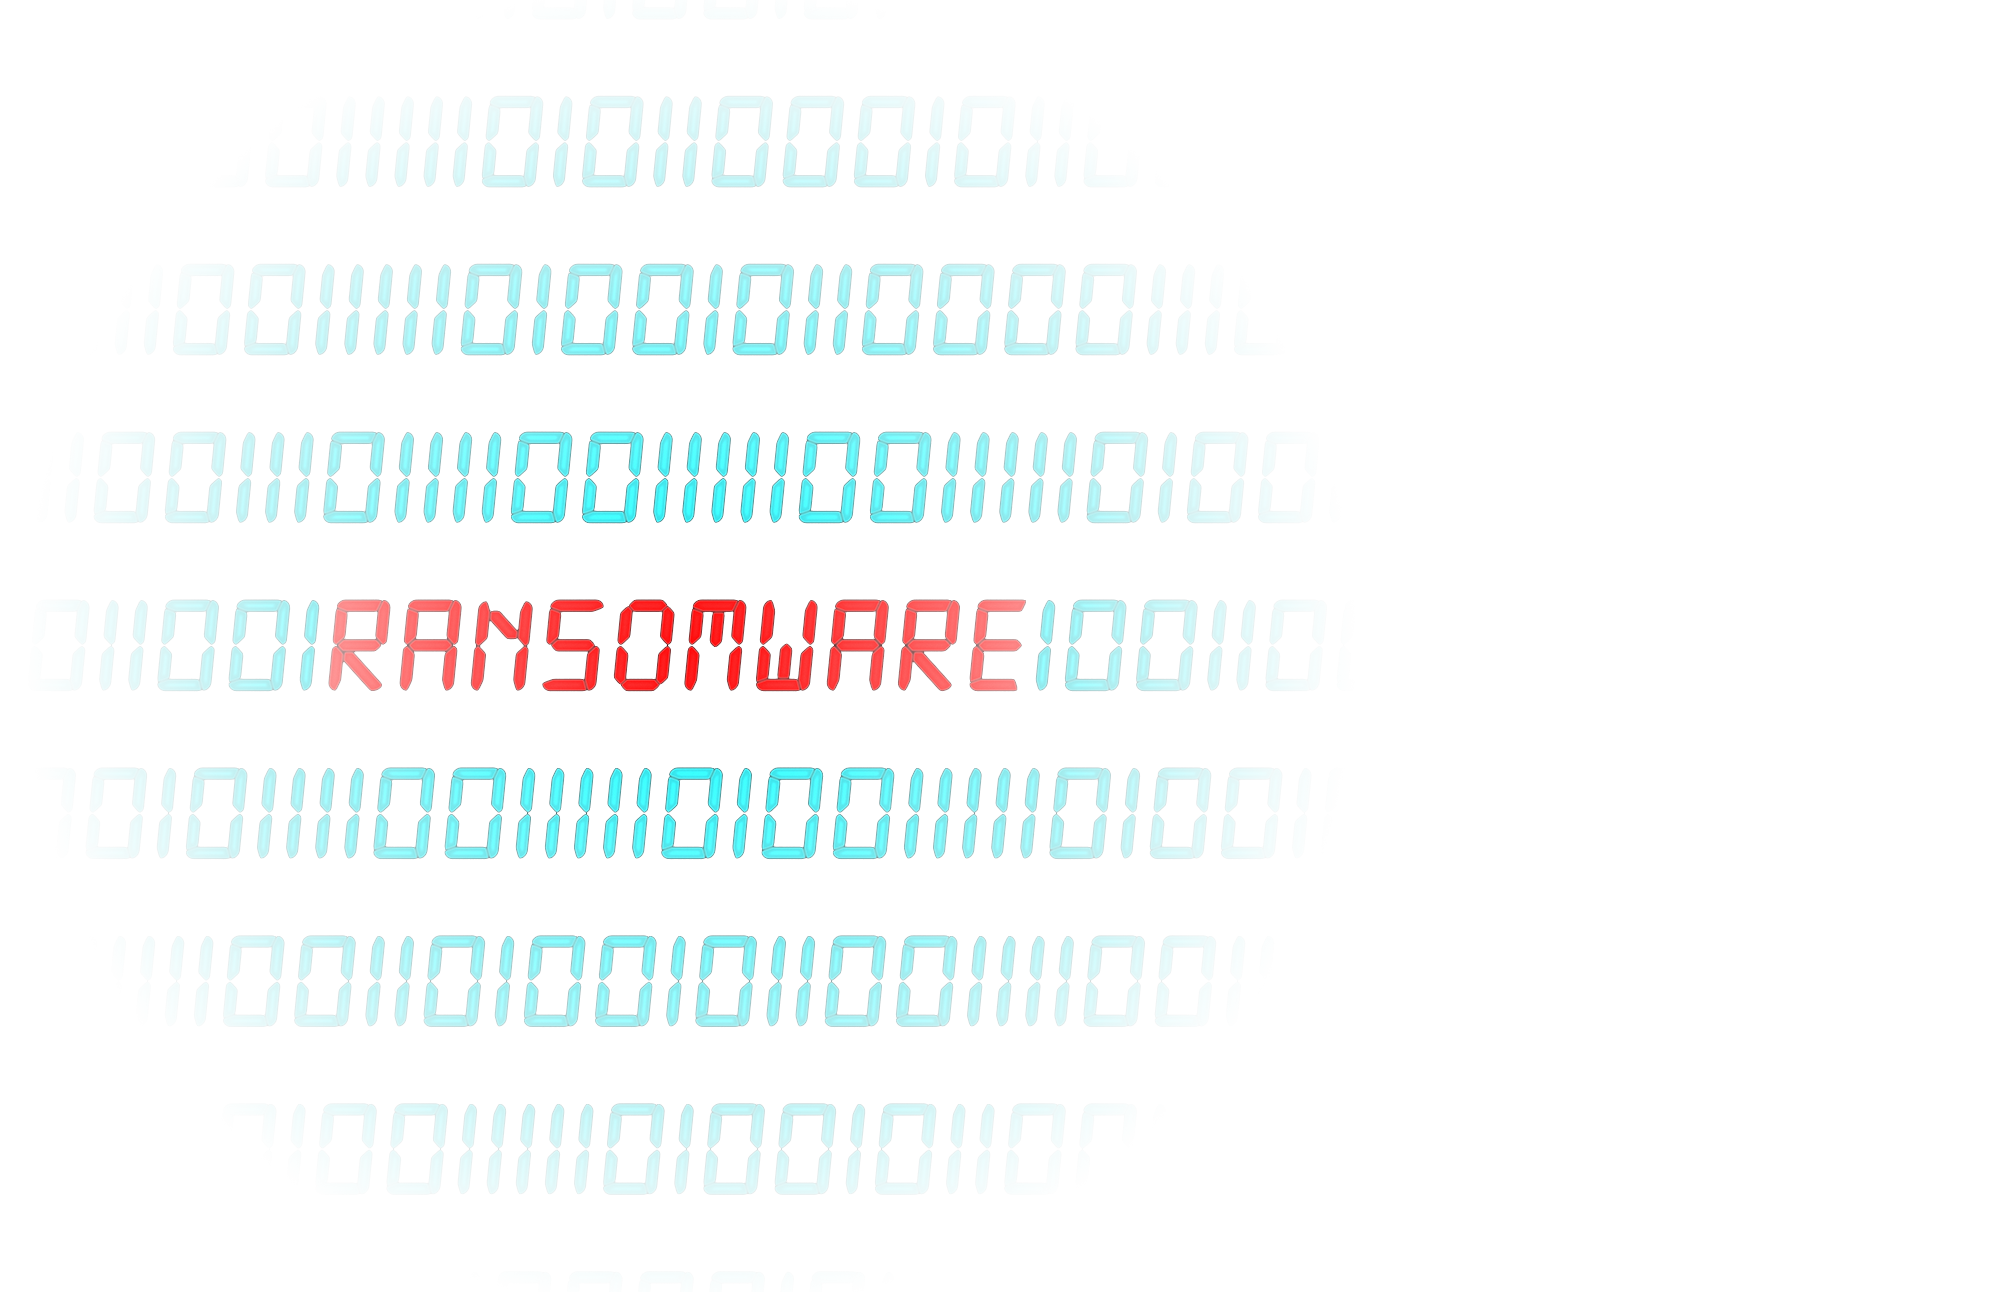 An ominous ransomware message